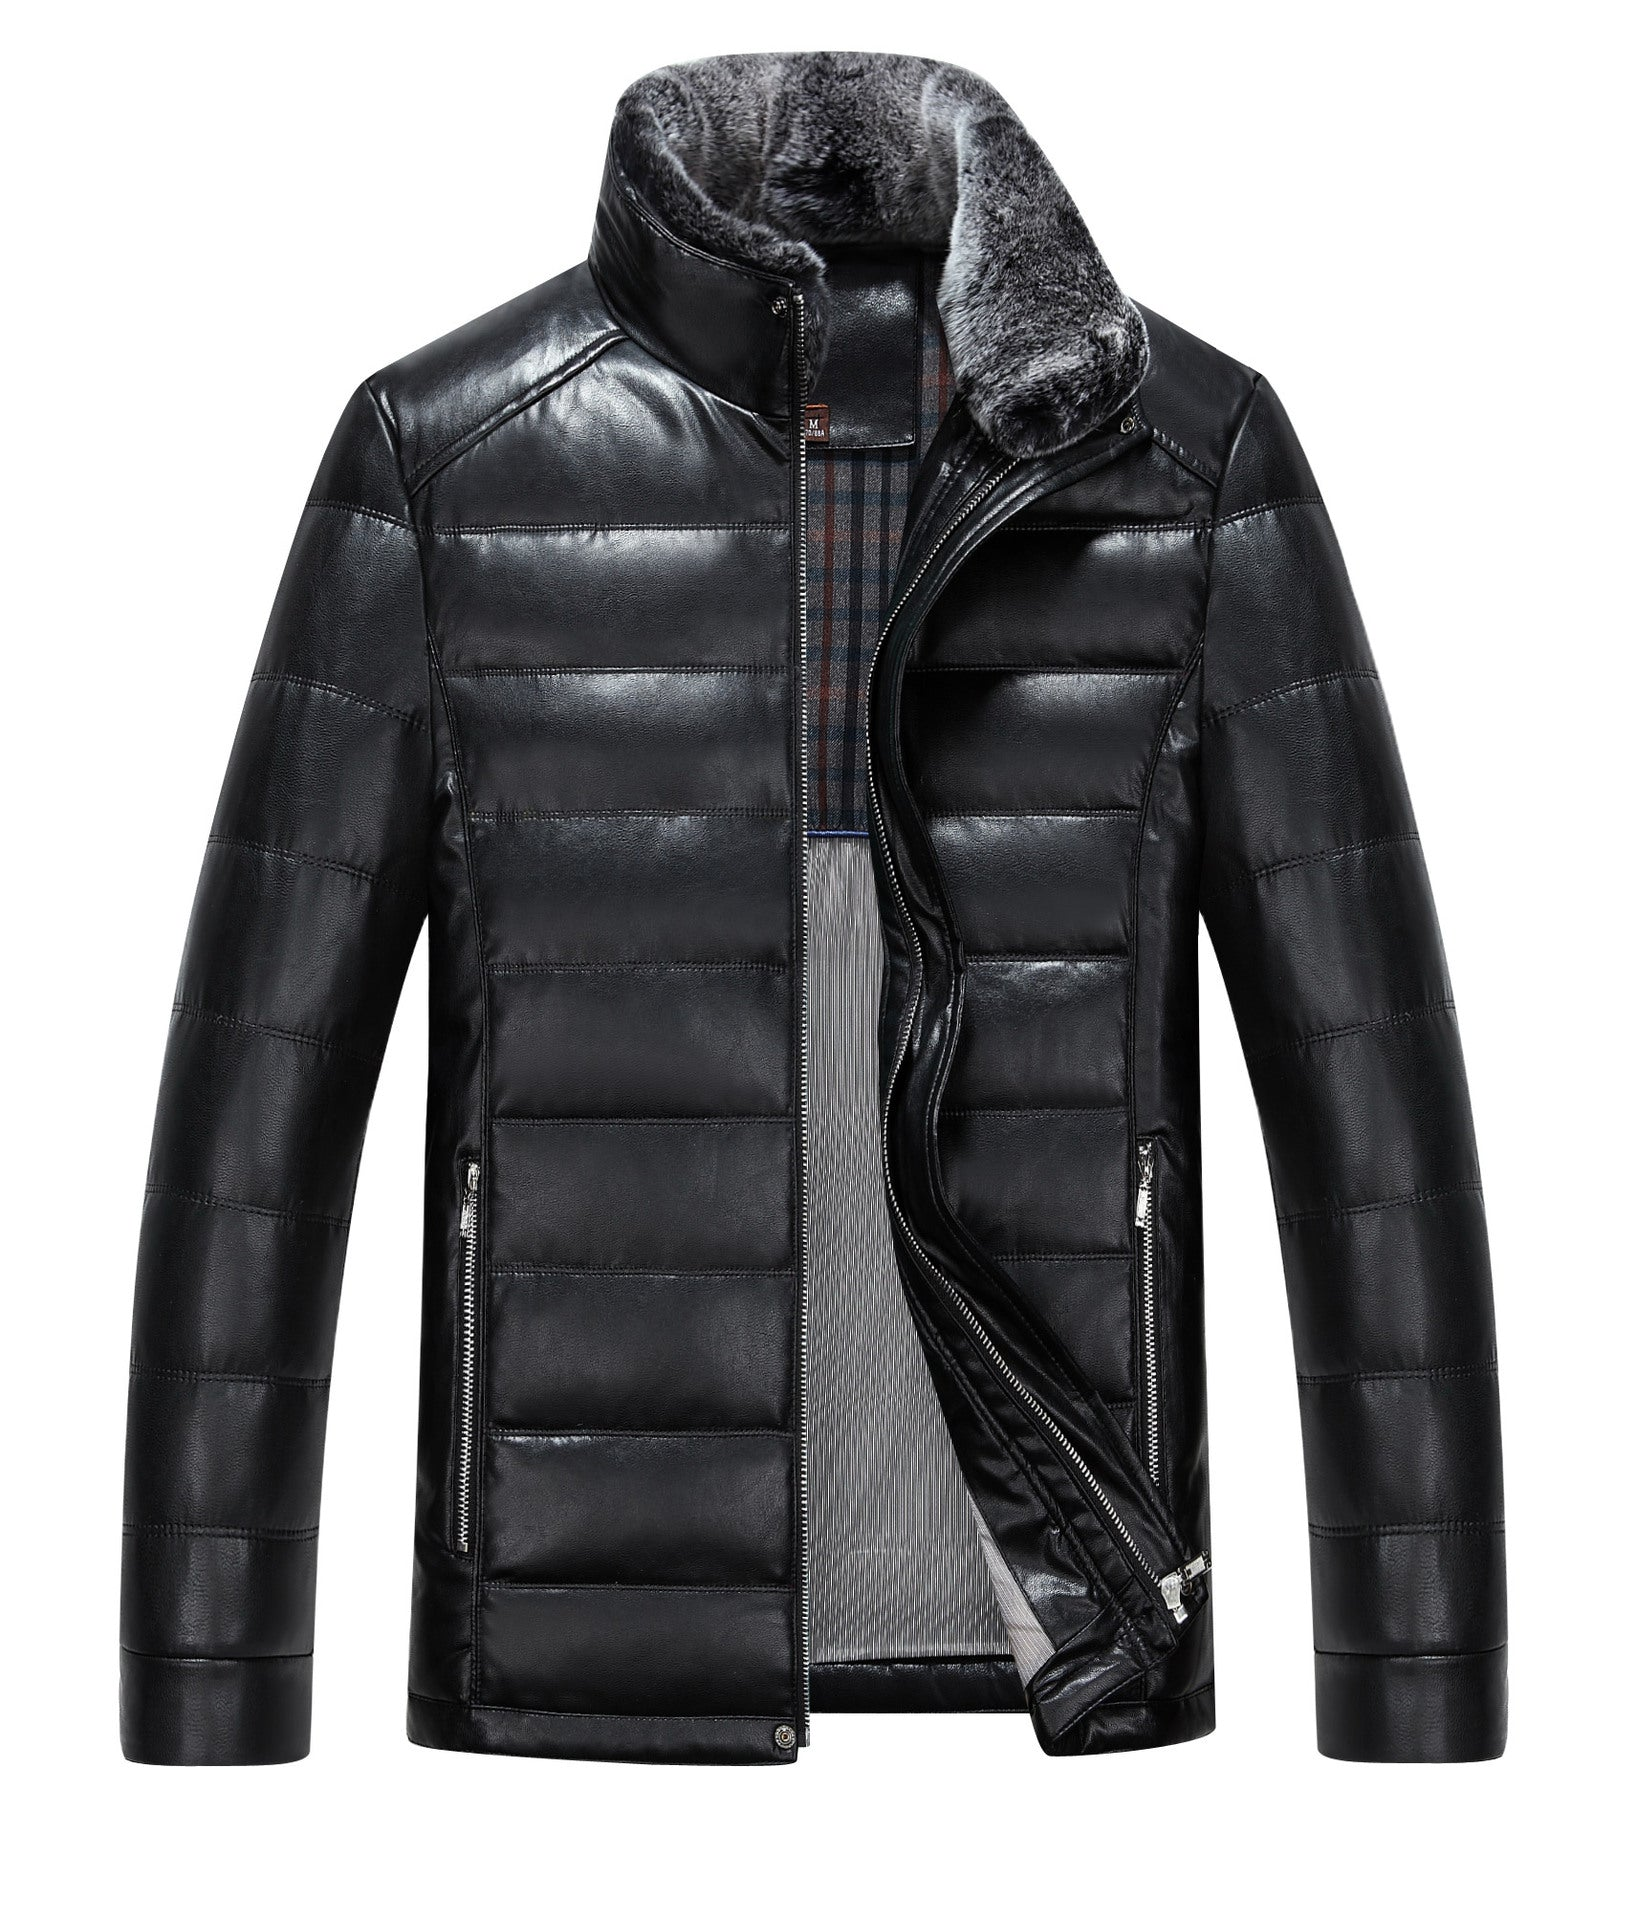 1308 Men winter leather jacket men short slim leather leather coat collar sheep skin thickening Down Jacket Coat